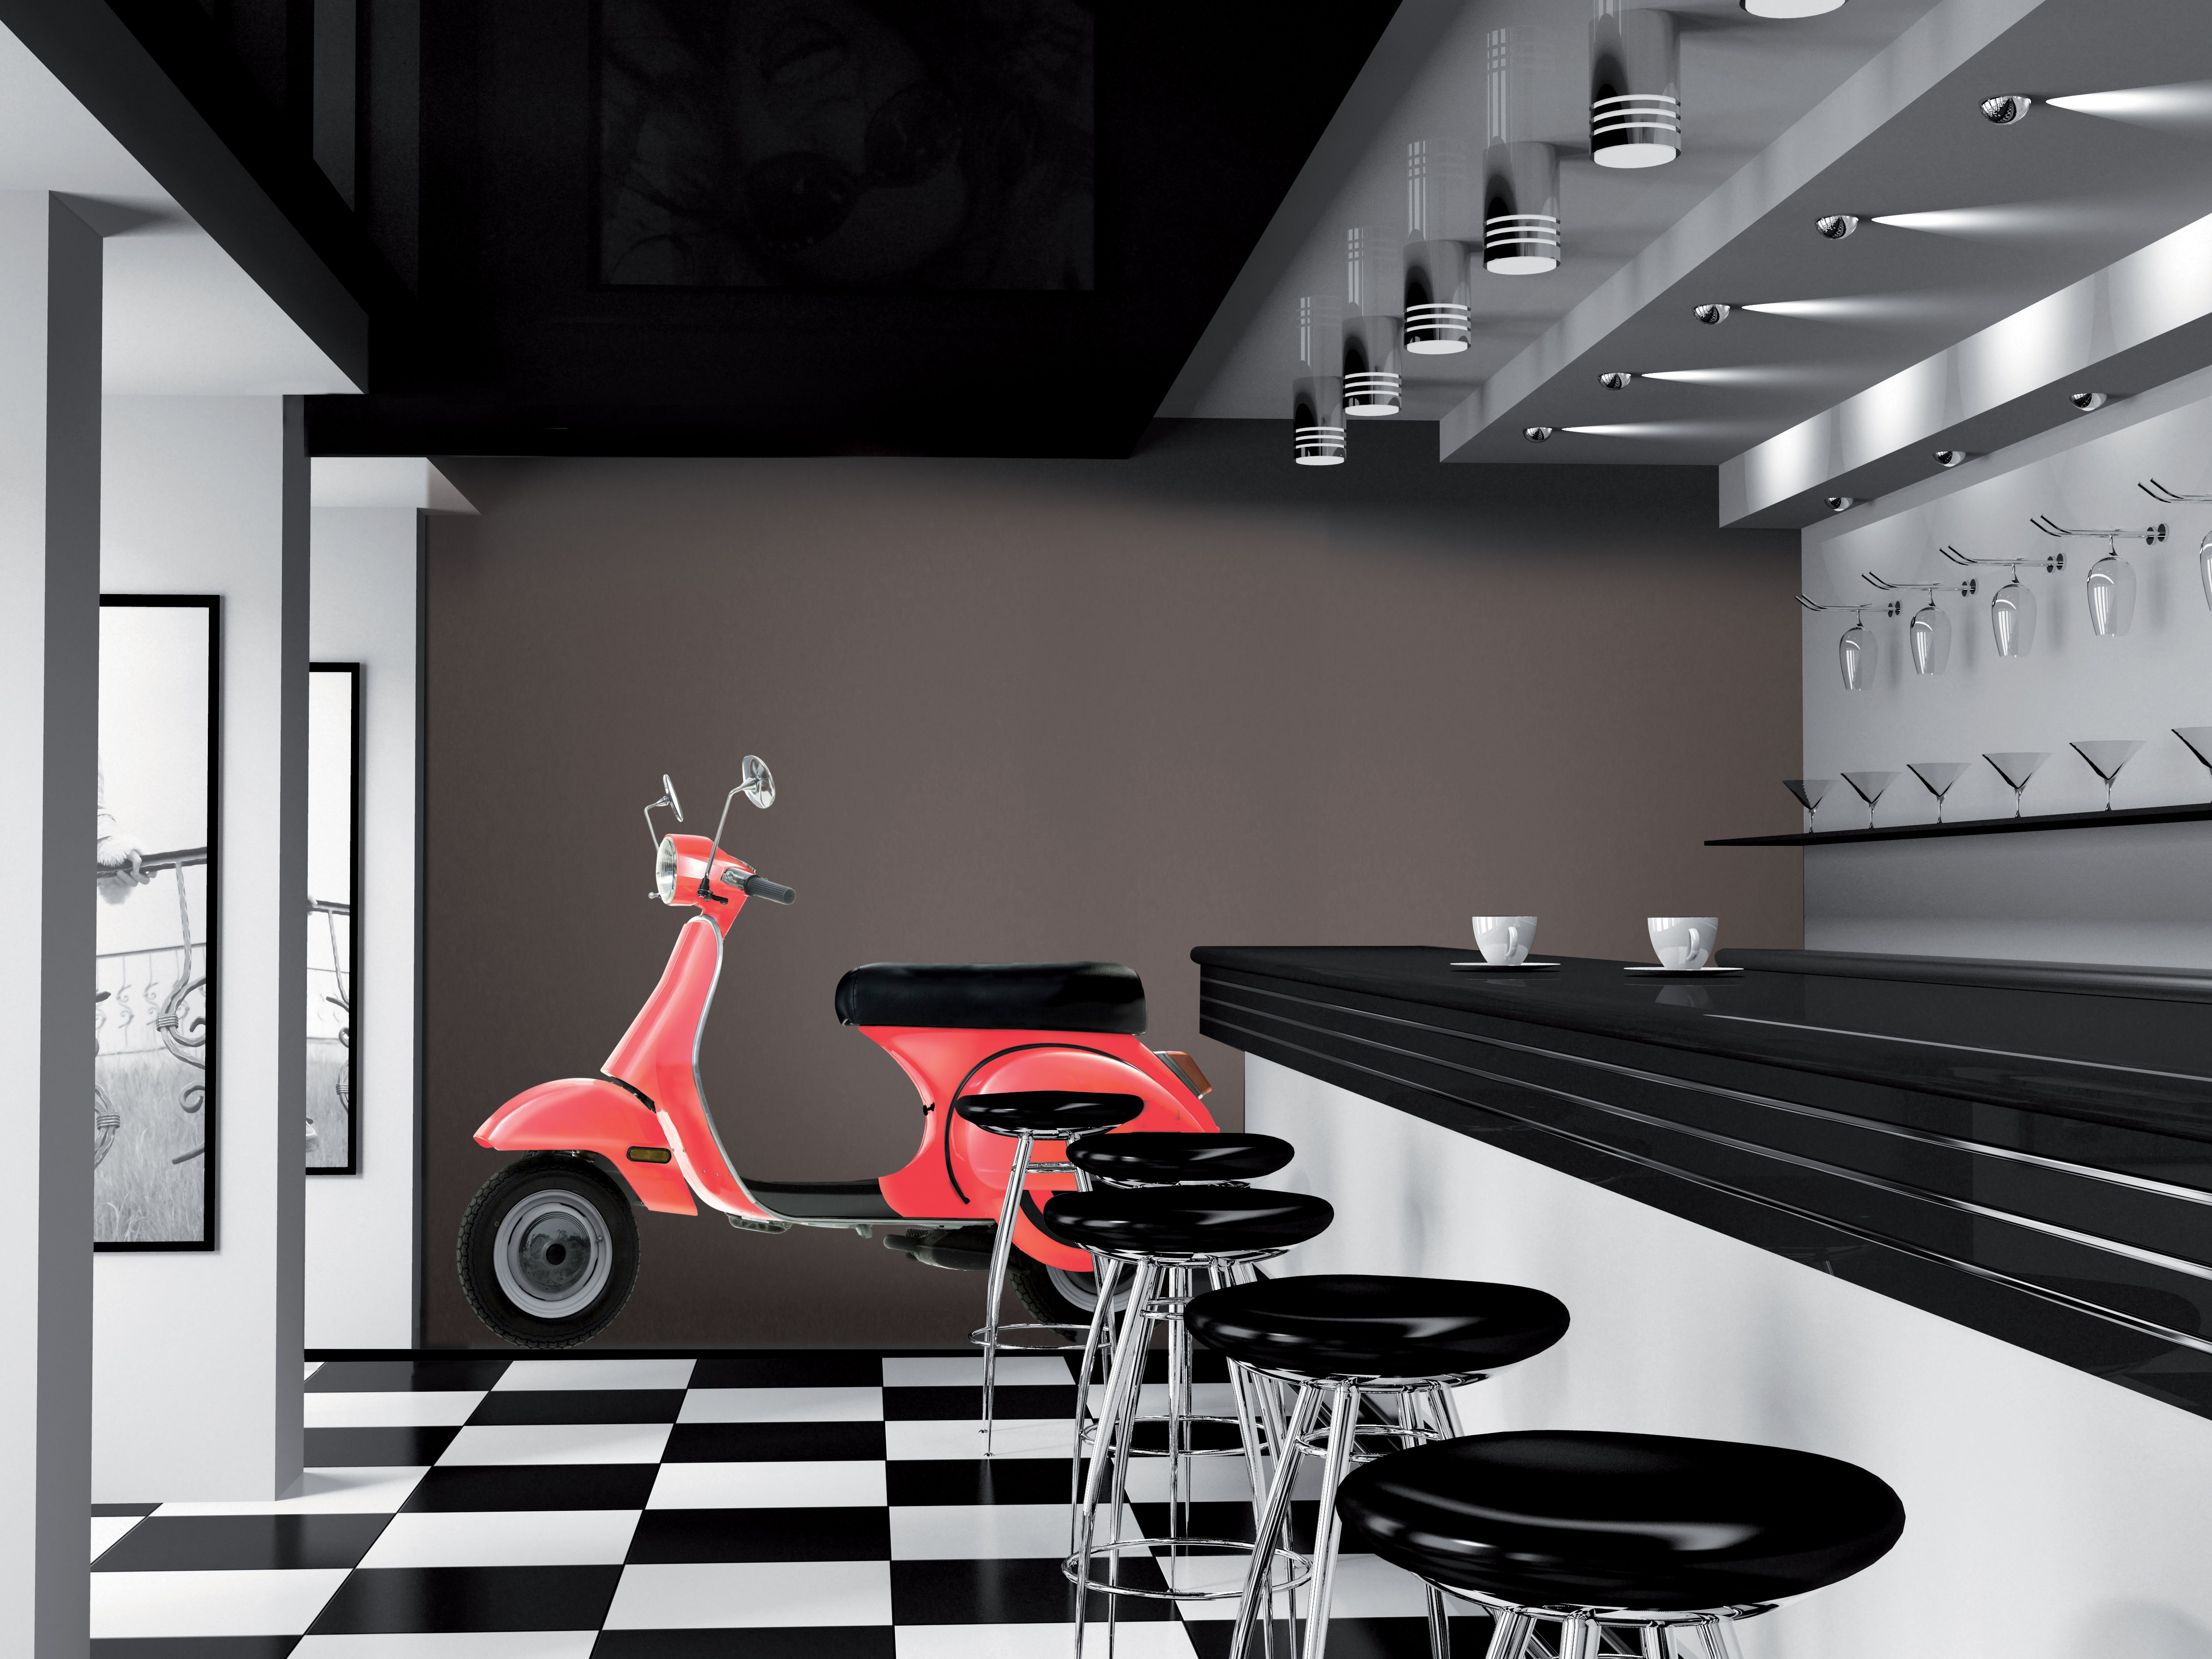 Retro scooter wall sticker room example scooter d 001 retro retro scooter wall sticker room example scooter d 001 amipublicfo Gallery